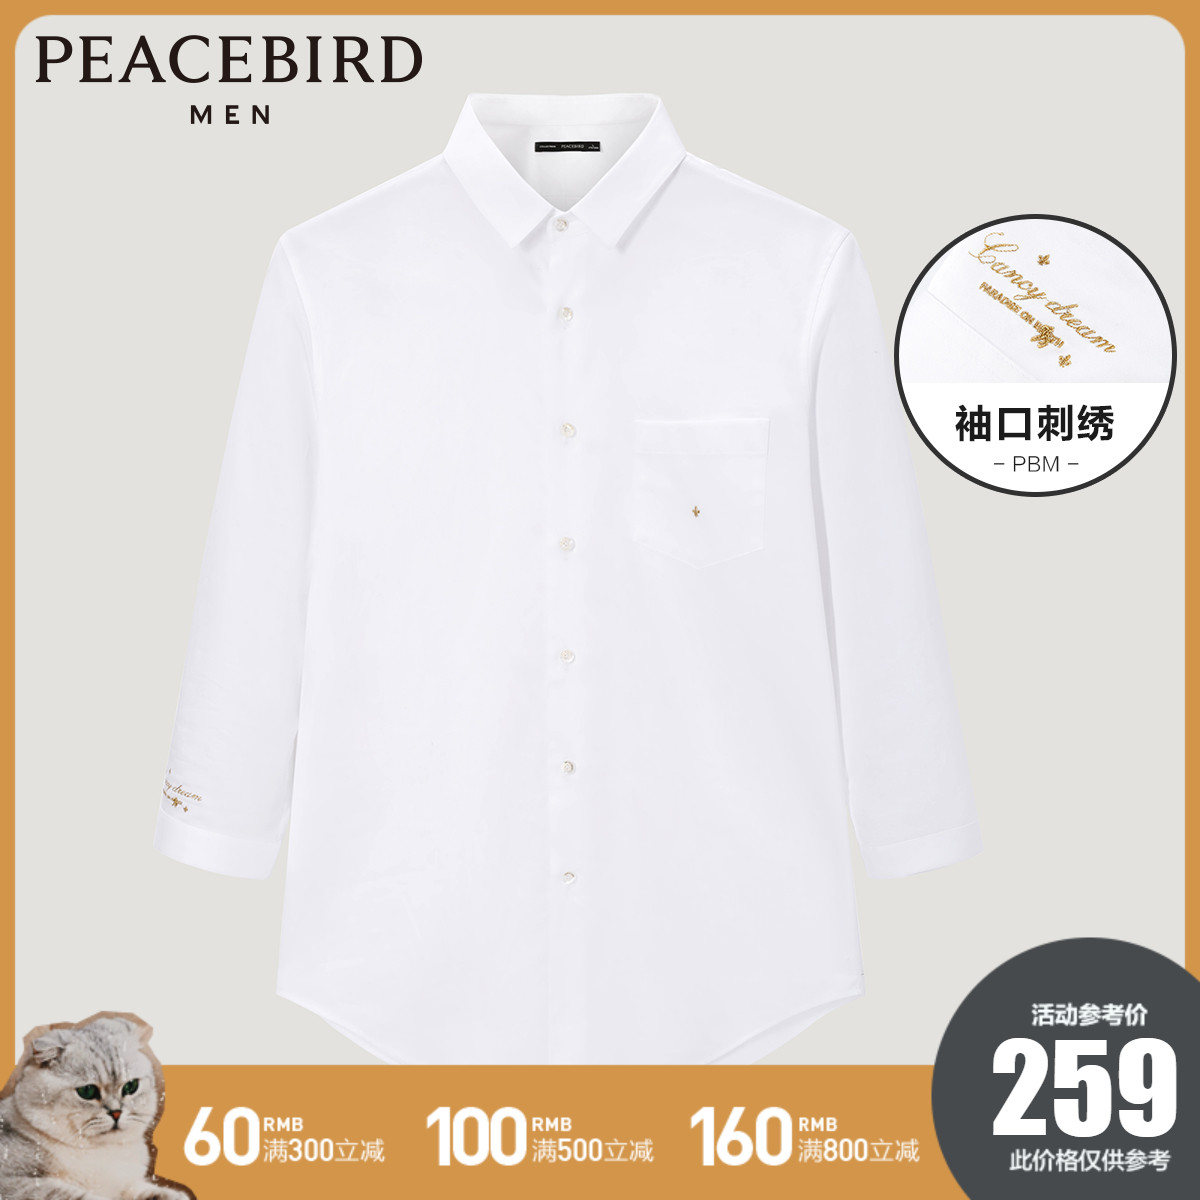 Taiping bird men's sleeve embroidery middle sleeve shirt men's business leisure men's shirt Korean Trend top